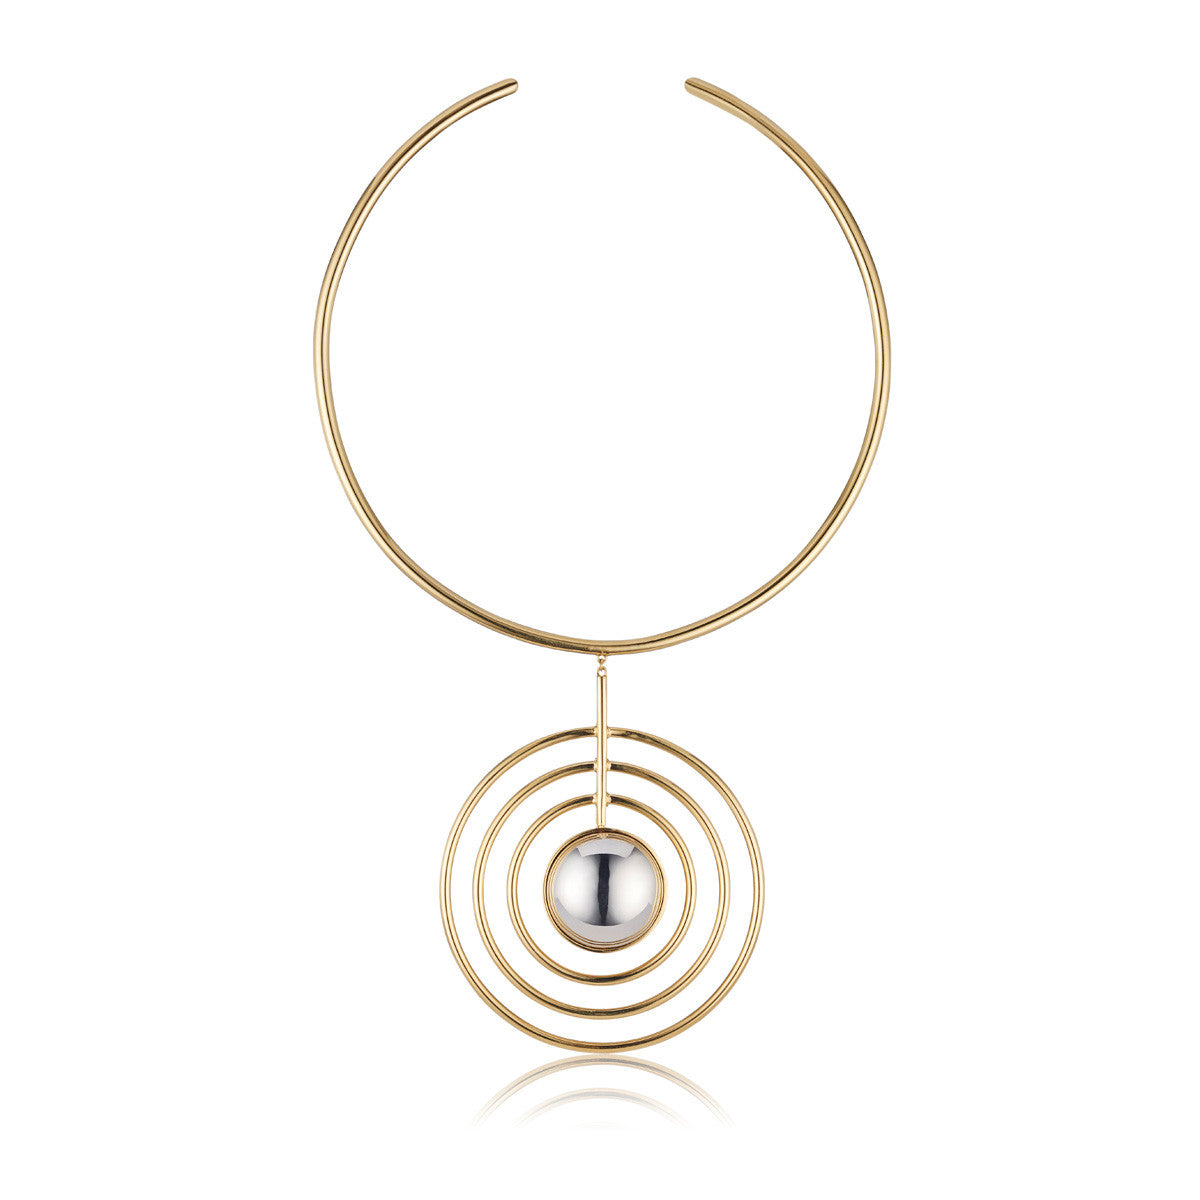 Solid brass, the Splendidus Saturn choker necklace features contrasting 18K gold and rhodium plating - front